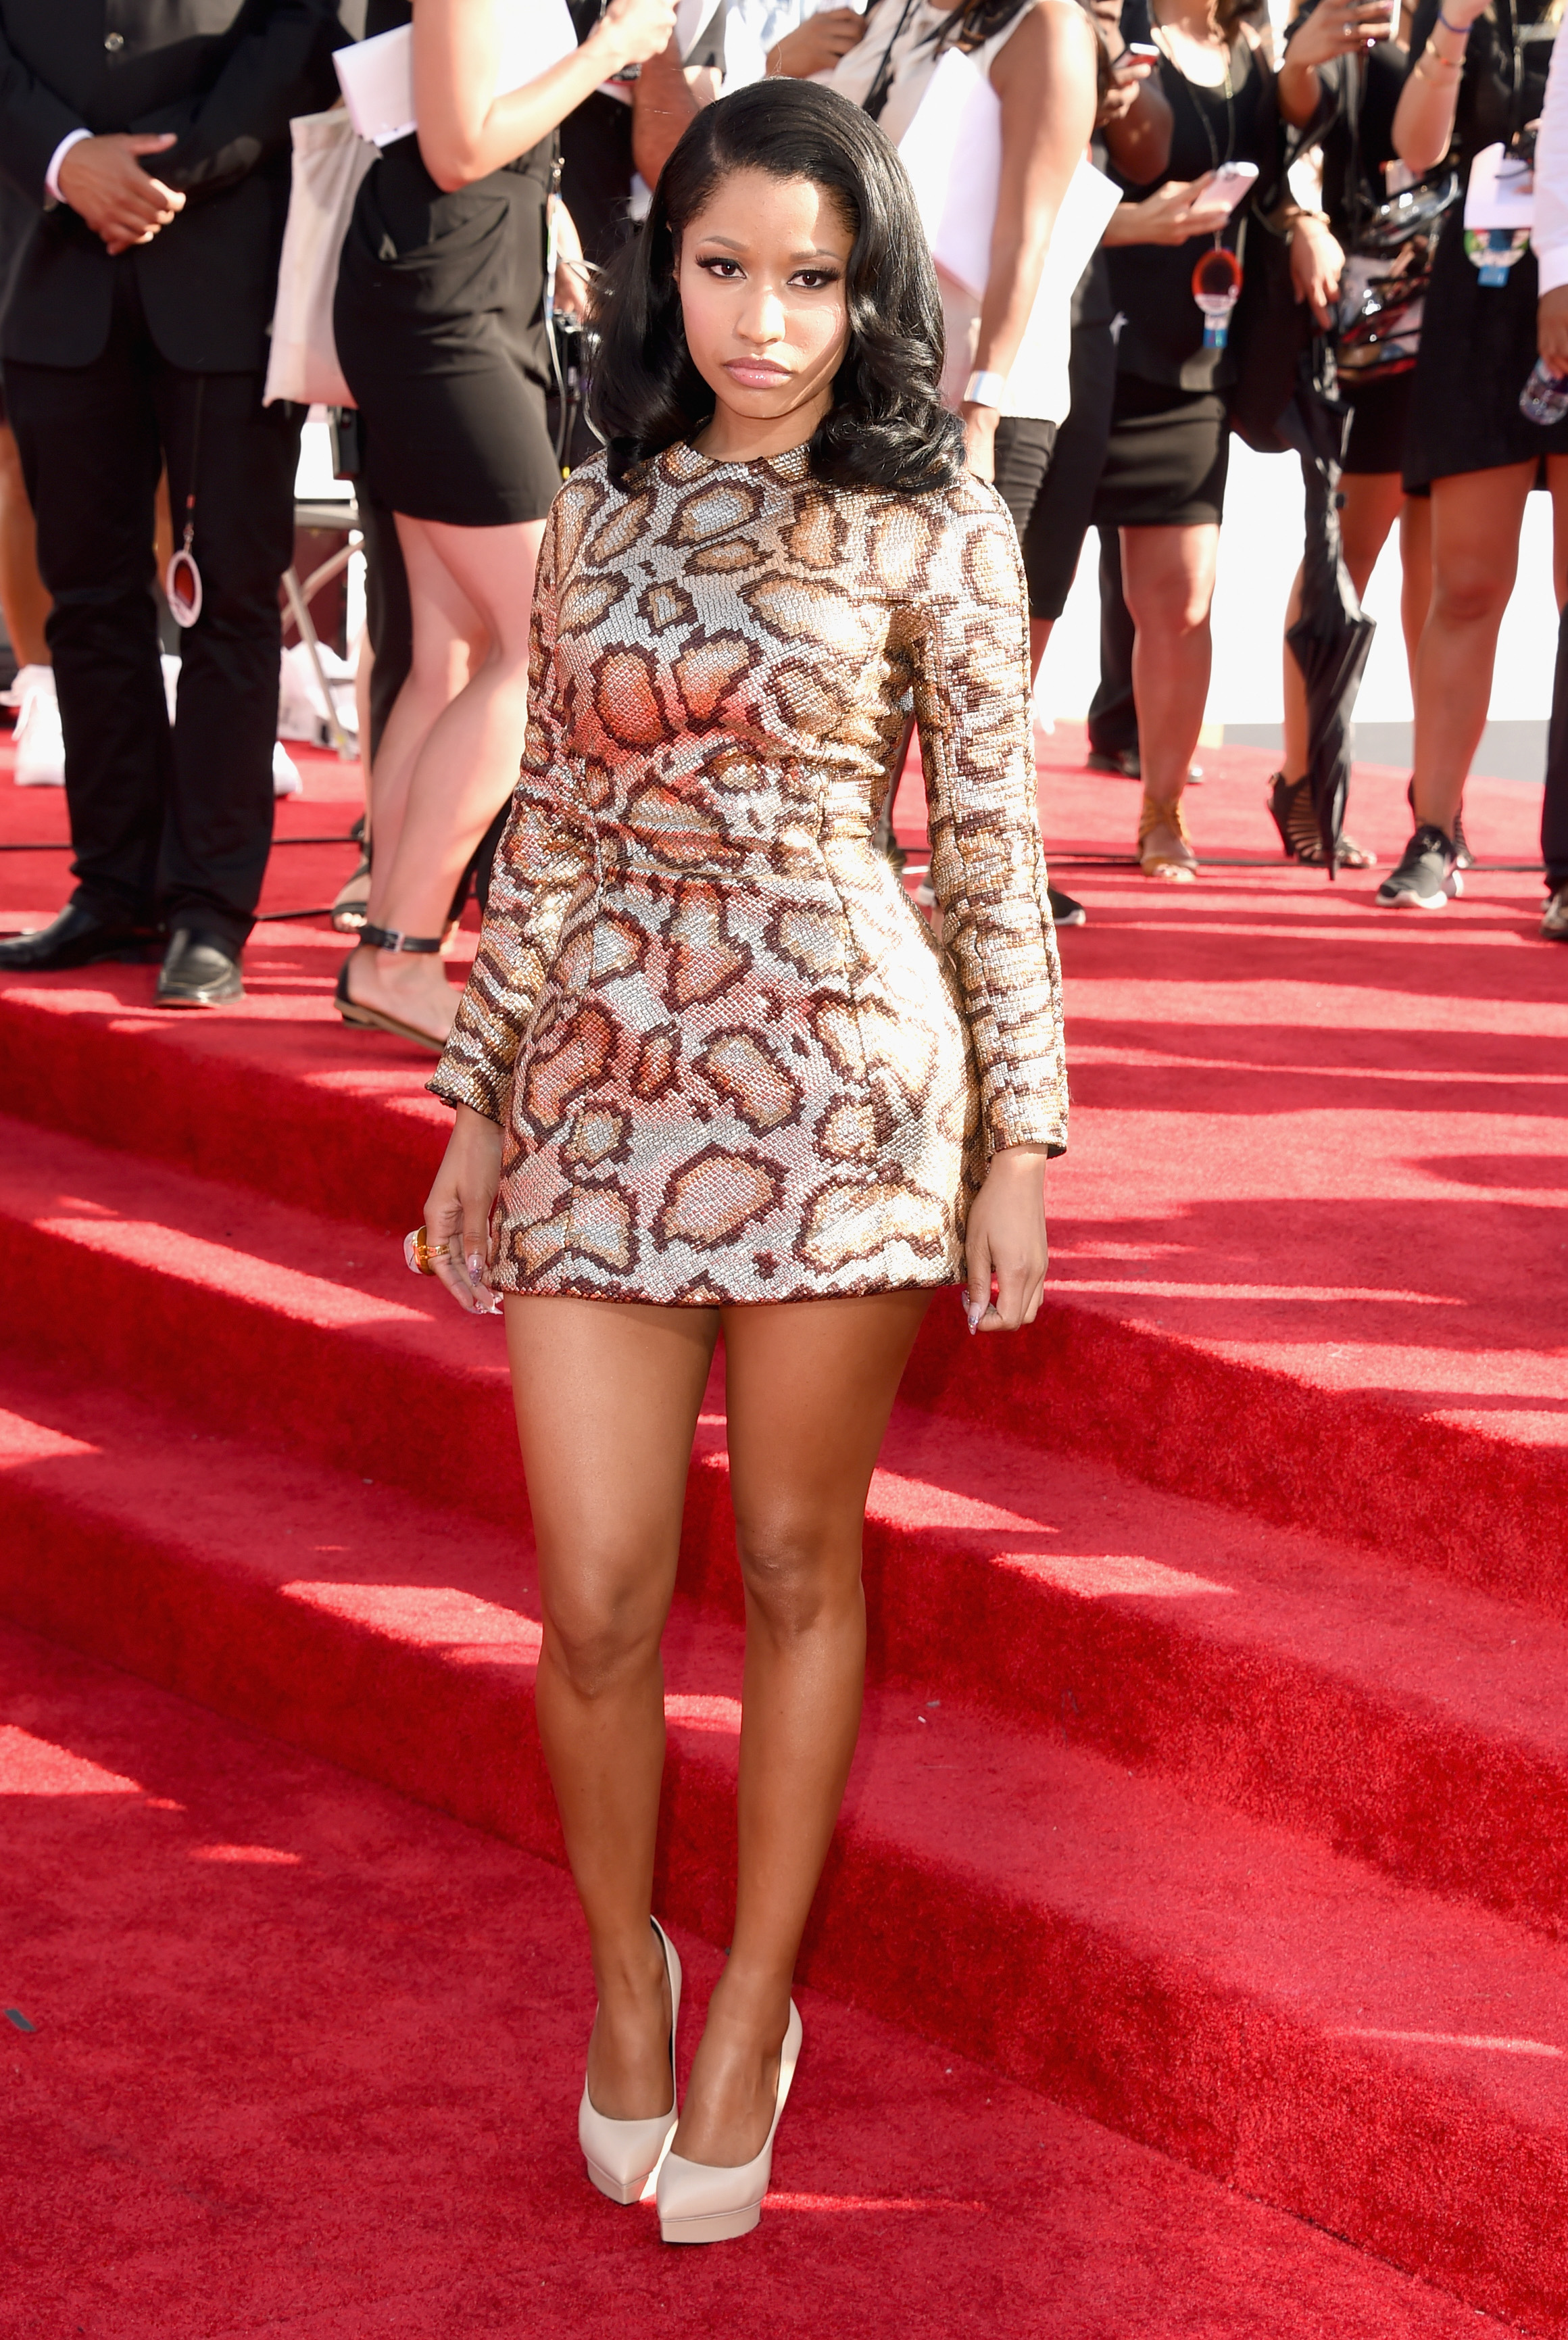 Nicki Minaj attends the 2014 MTV Video Music Awards at The Forum on August 24, 2014 in Inglewood, California.